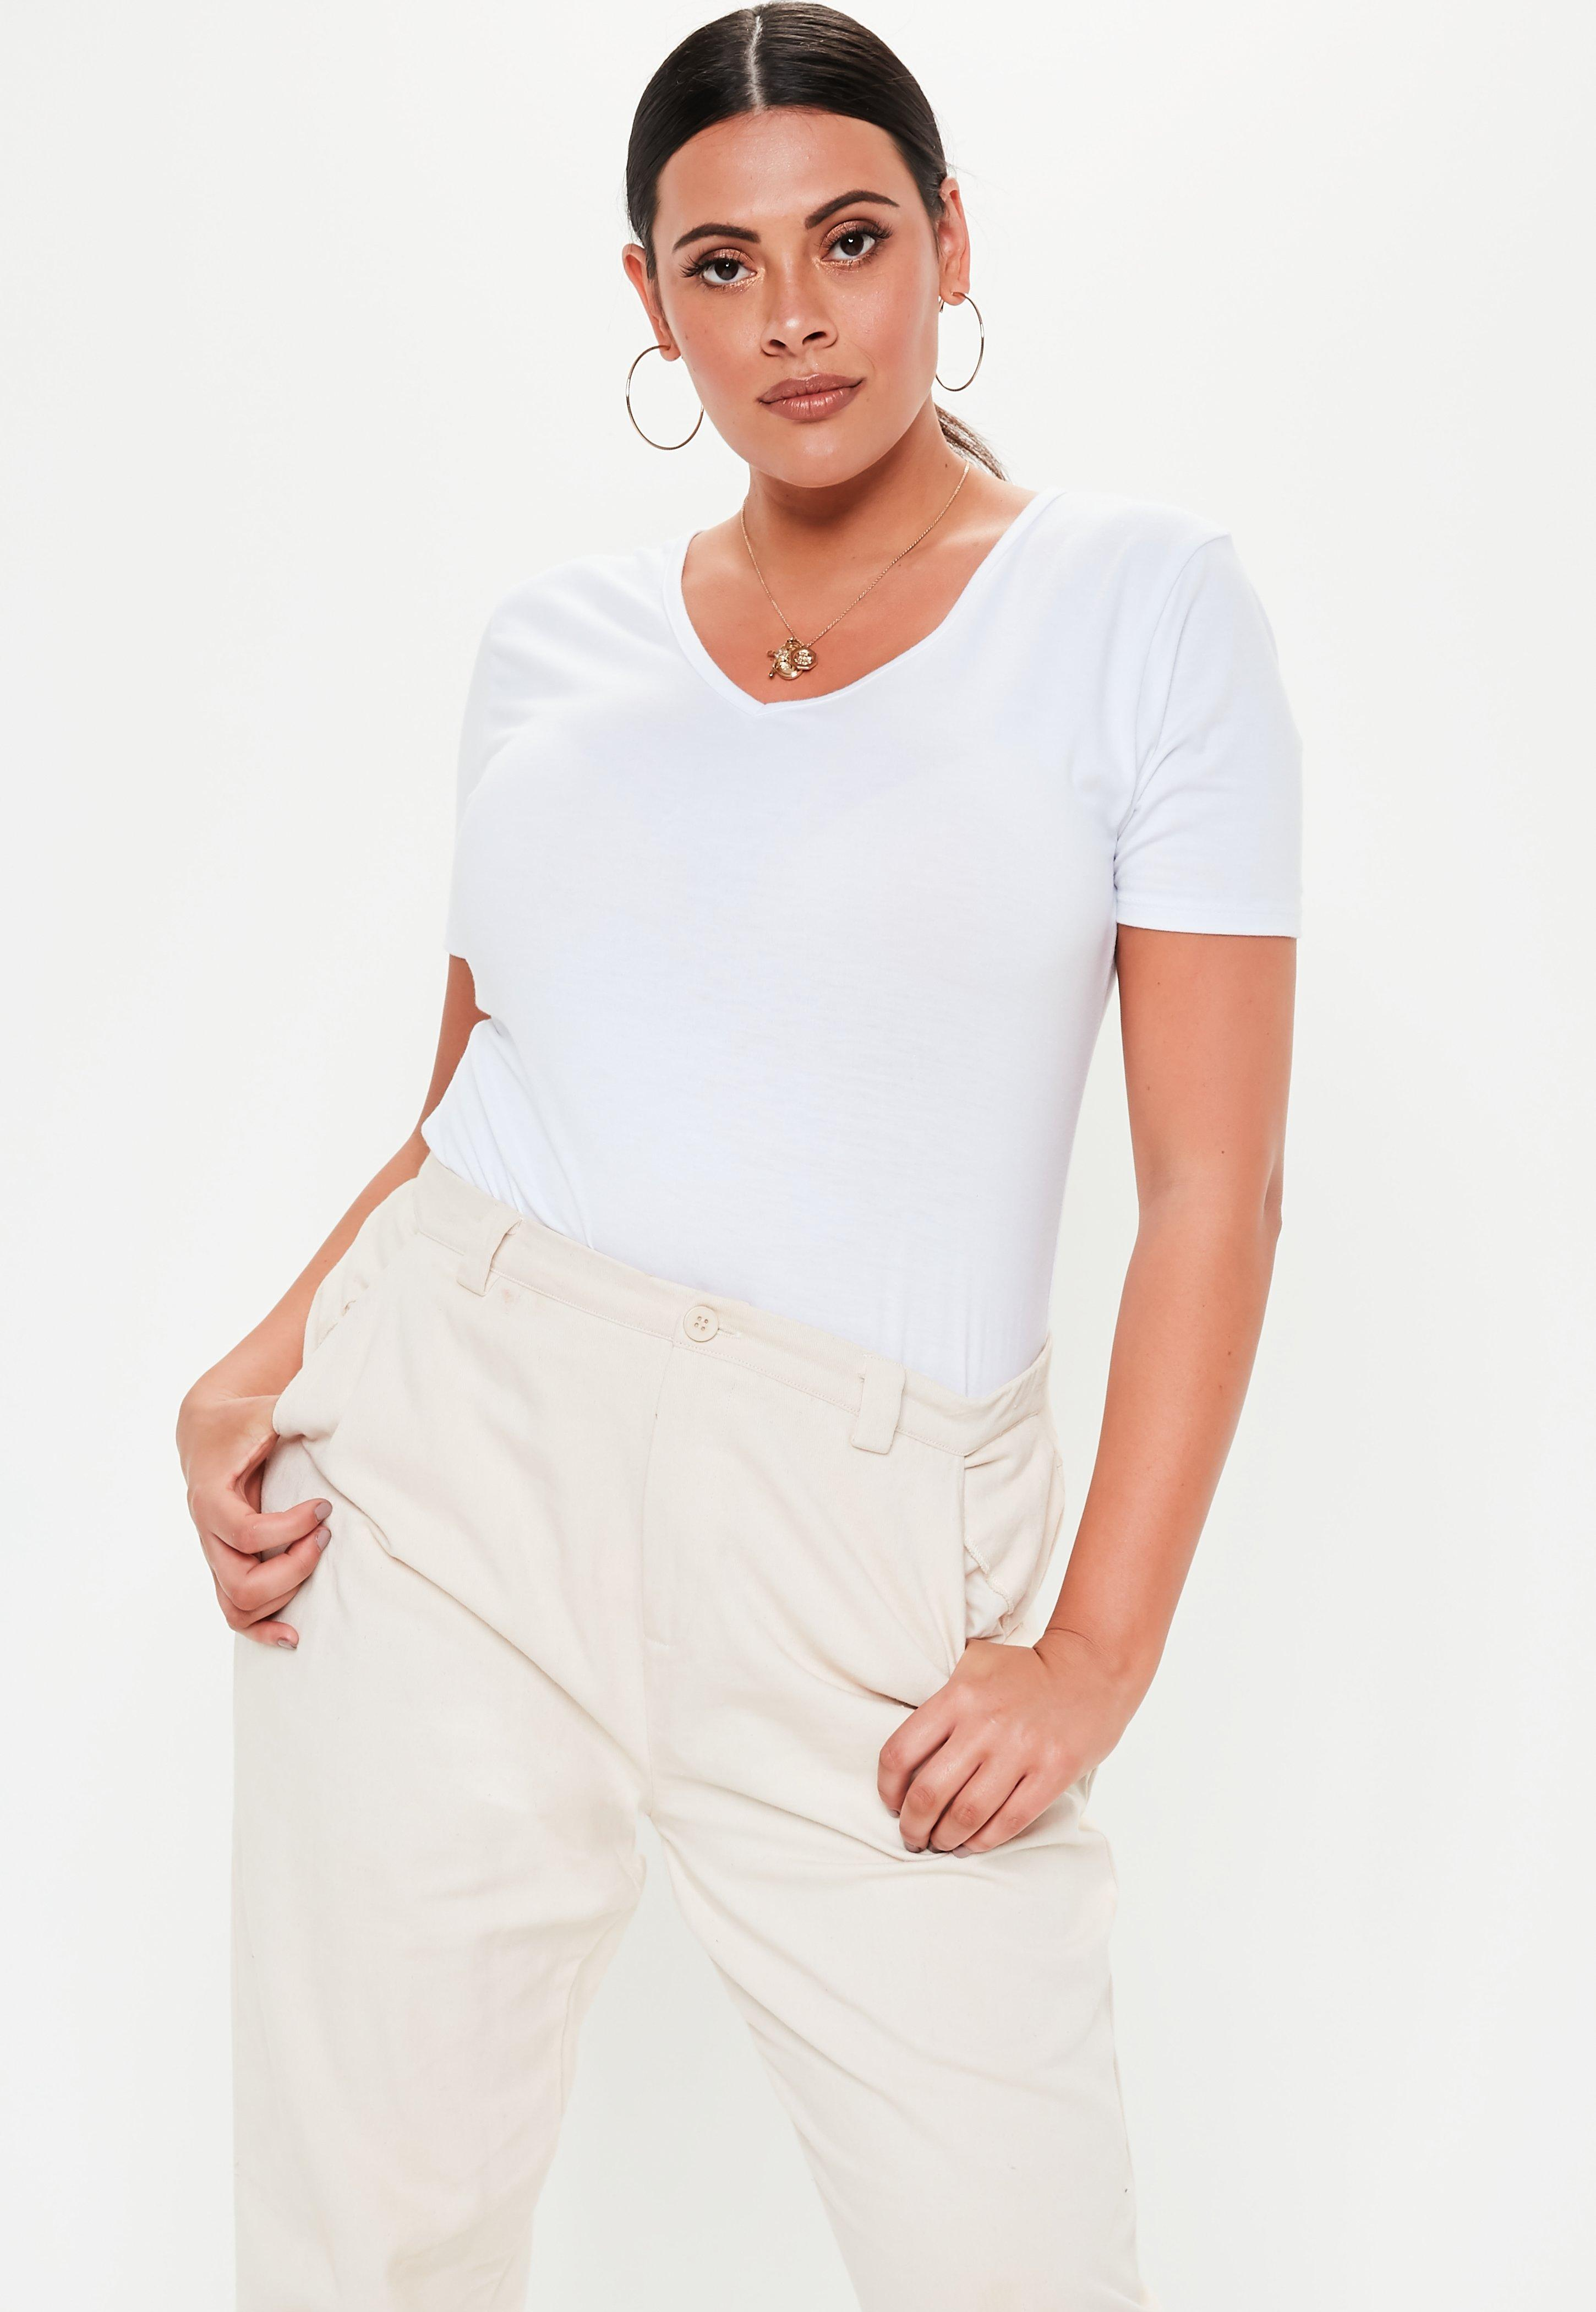 730b0c154b1 T-Shirts   Women s Tees - Missguided